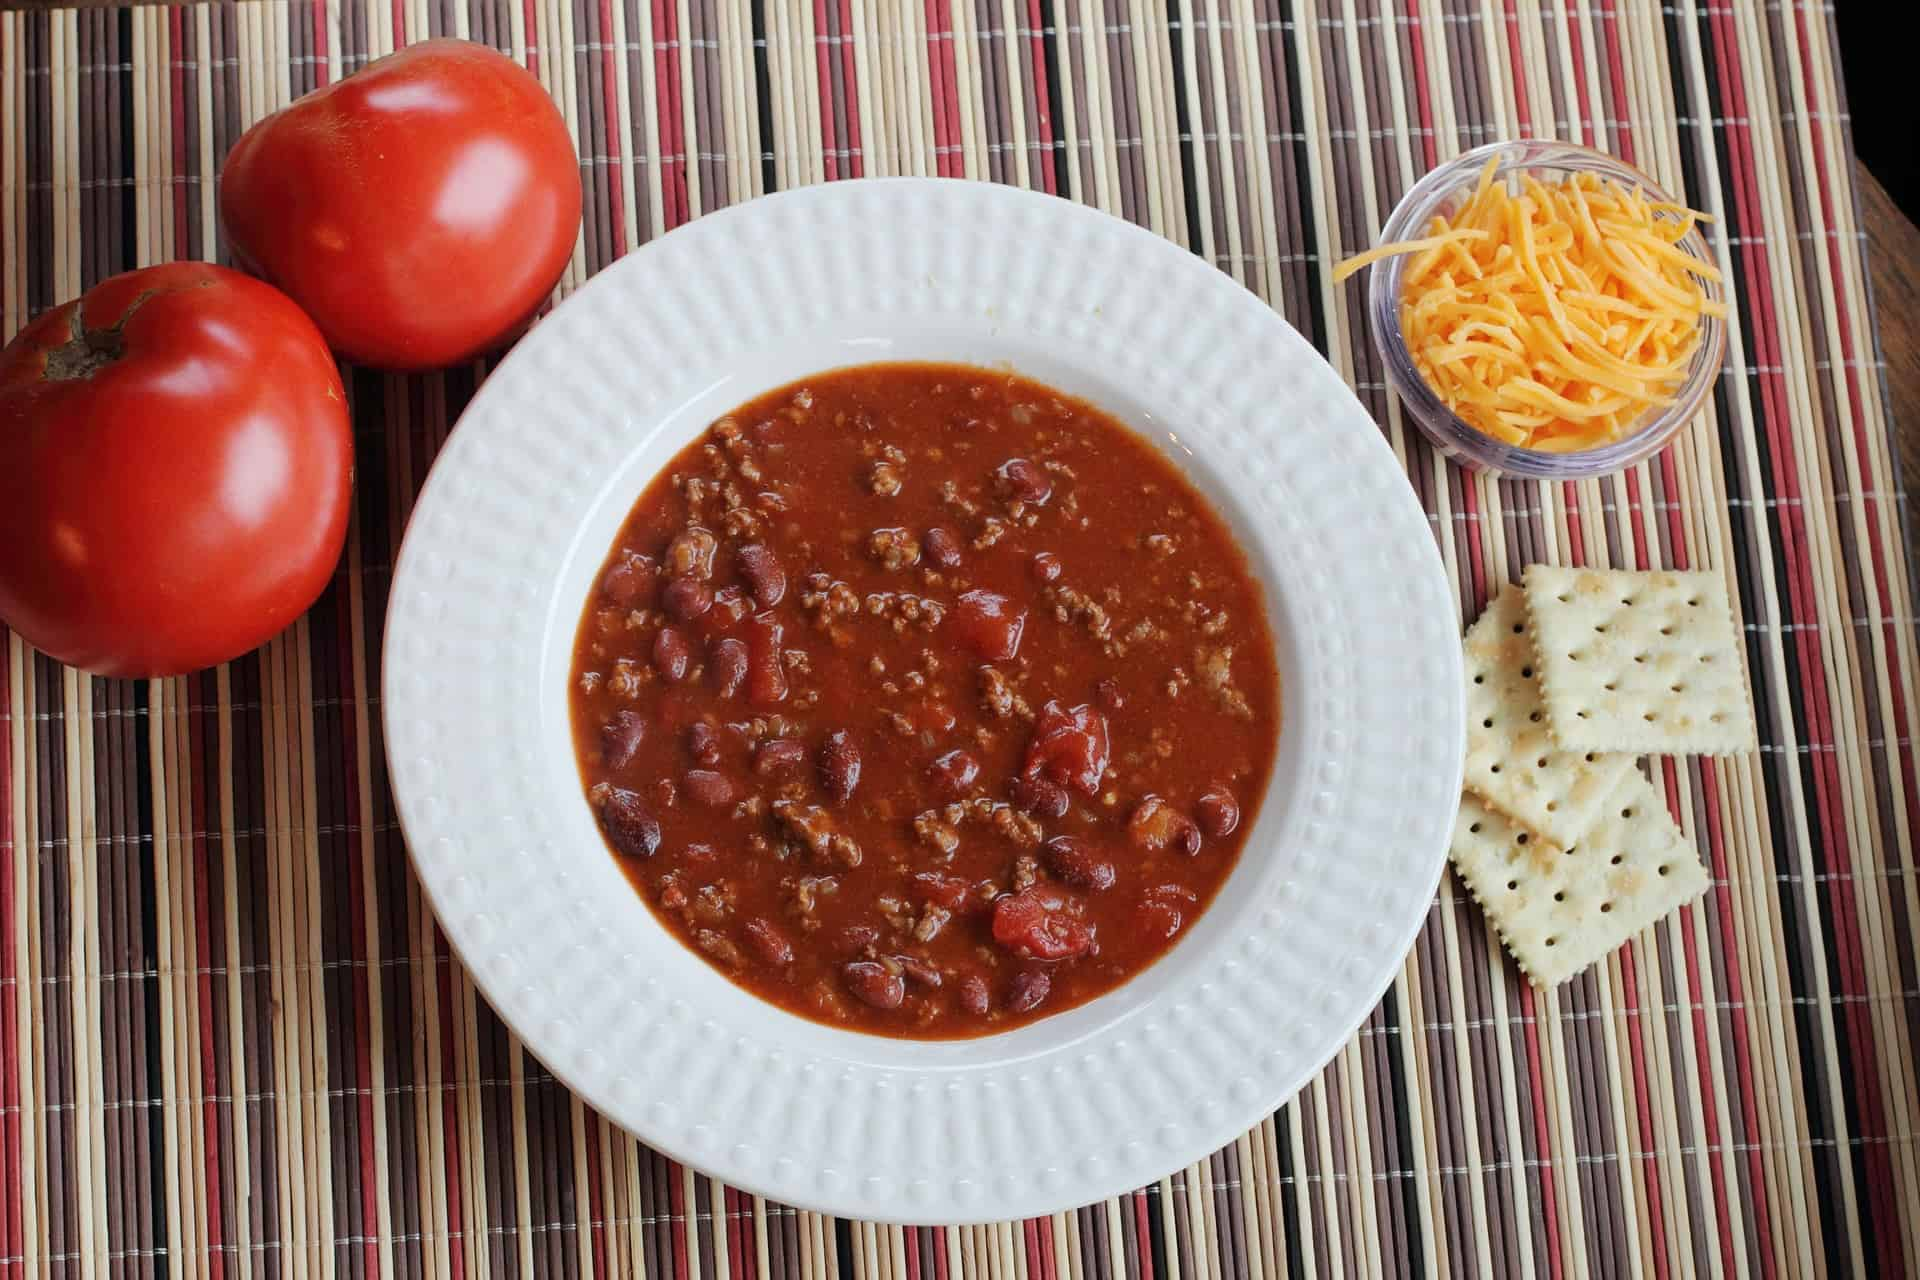 Top Secret Recipe's copycat recipe of Wendy's chili is one of my favorite easy recipes. Check out other recipes and menus on this post for your next casual dinner party.